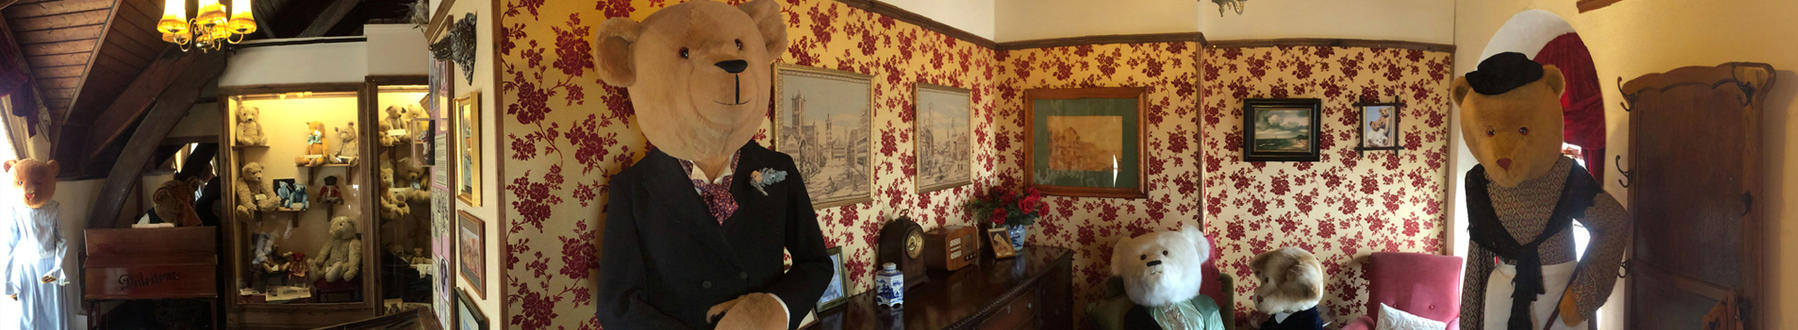 Teddy Bear Museum Reviews